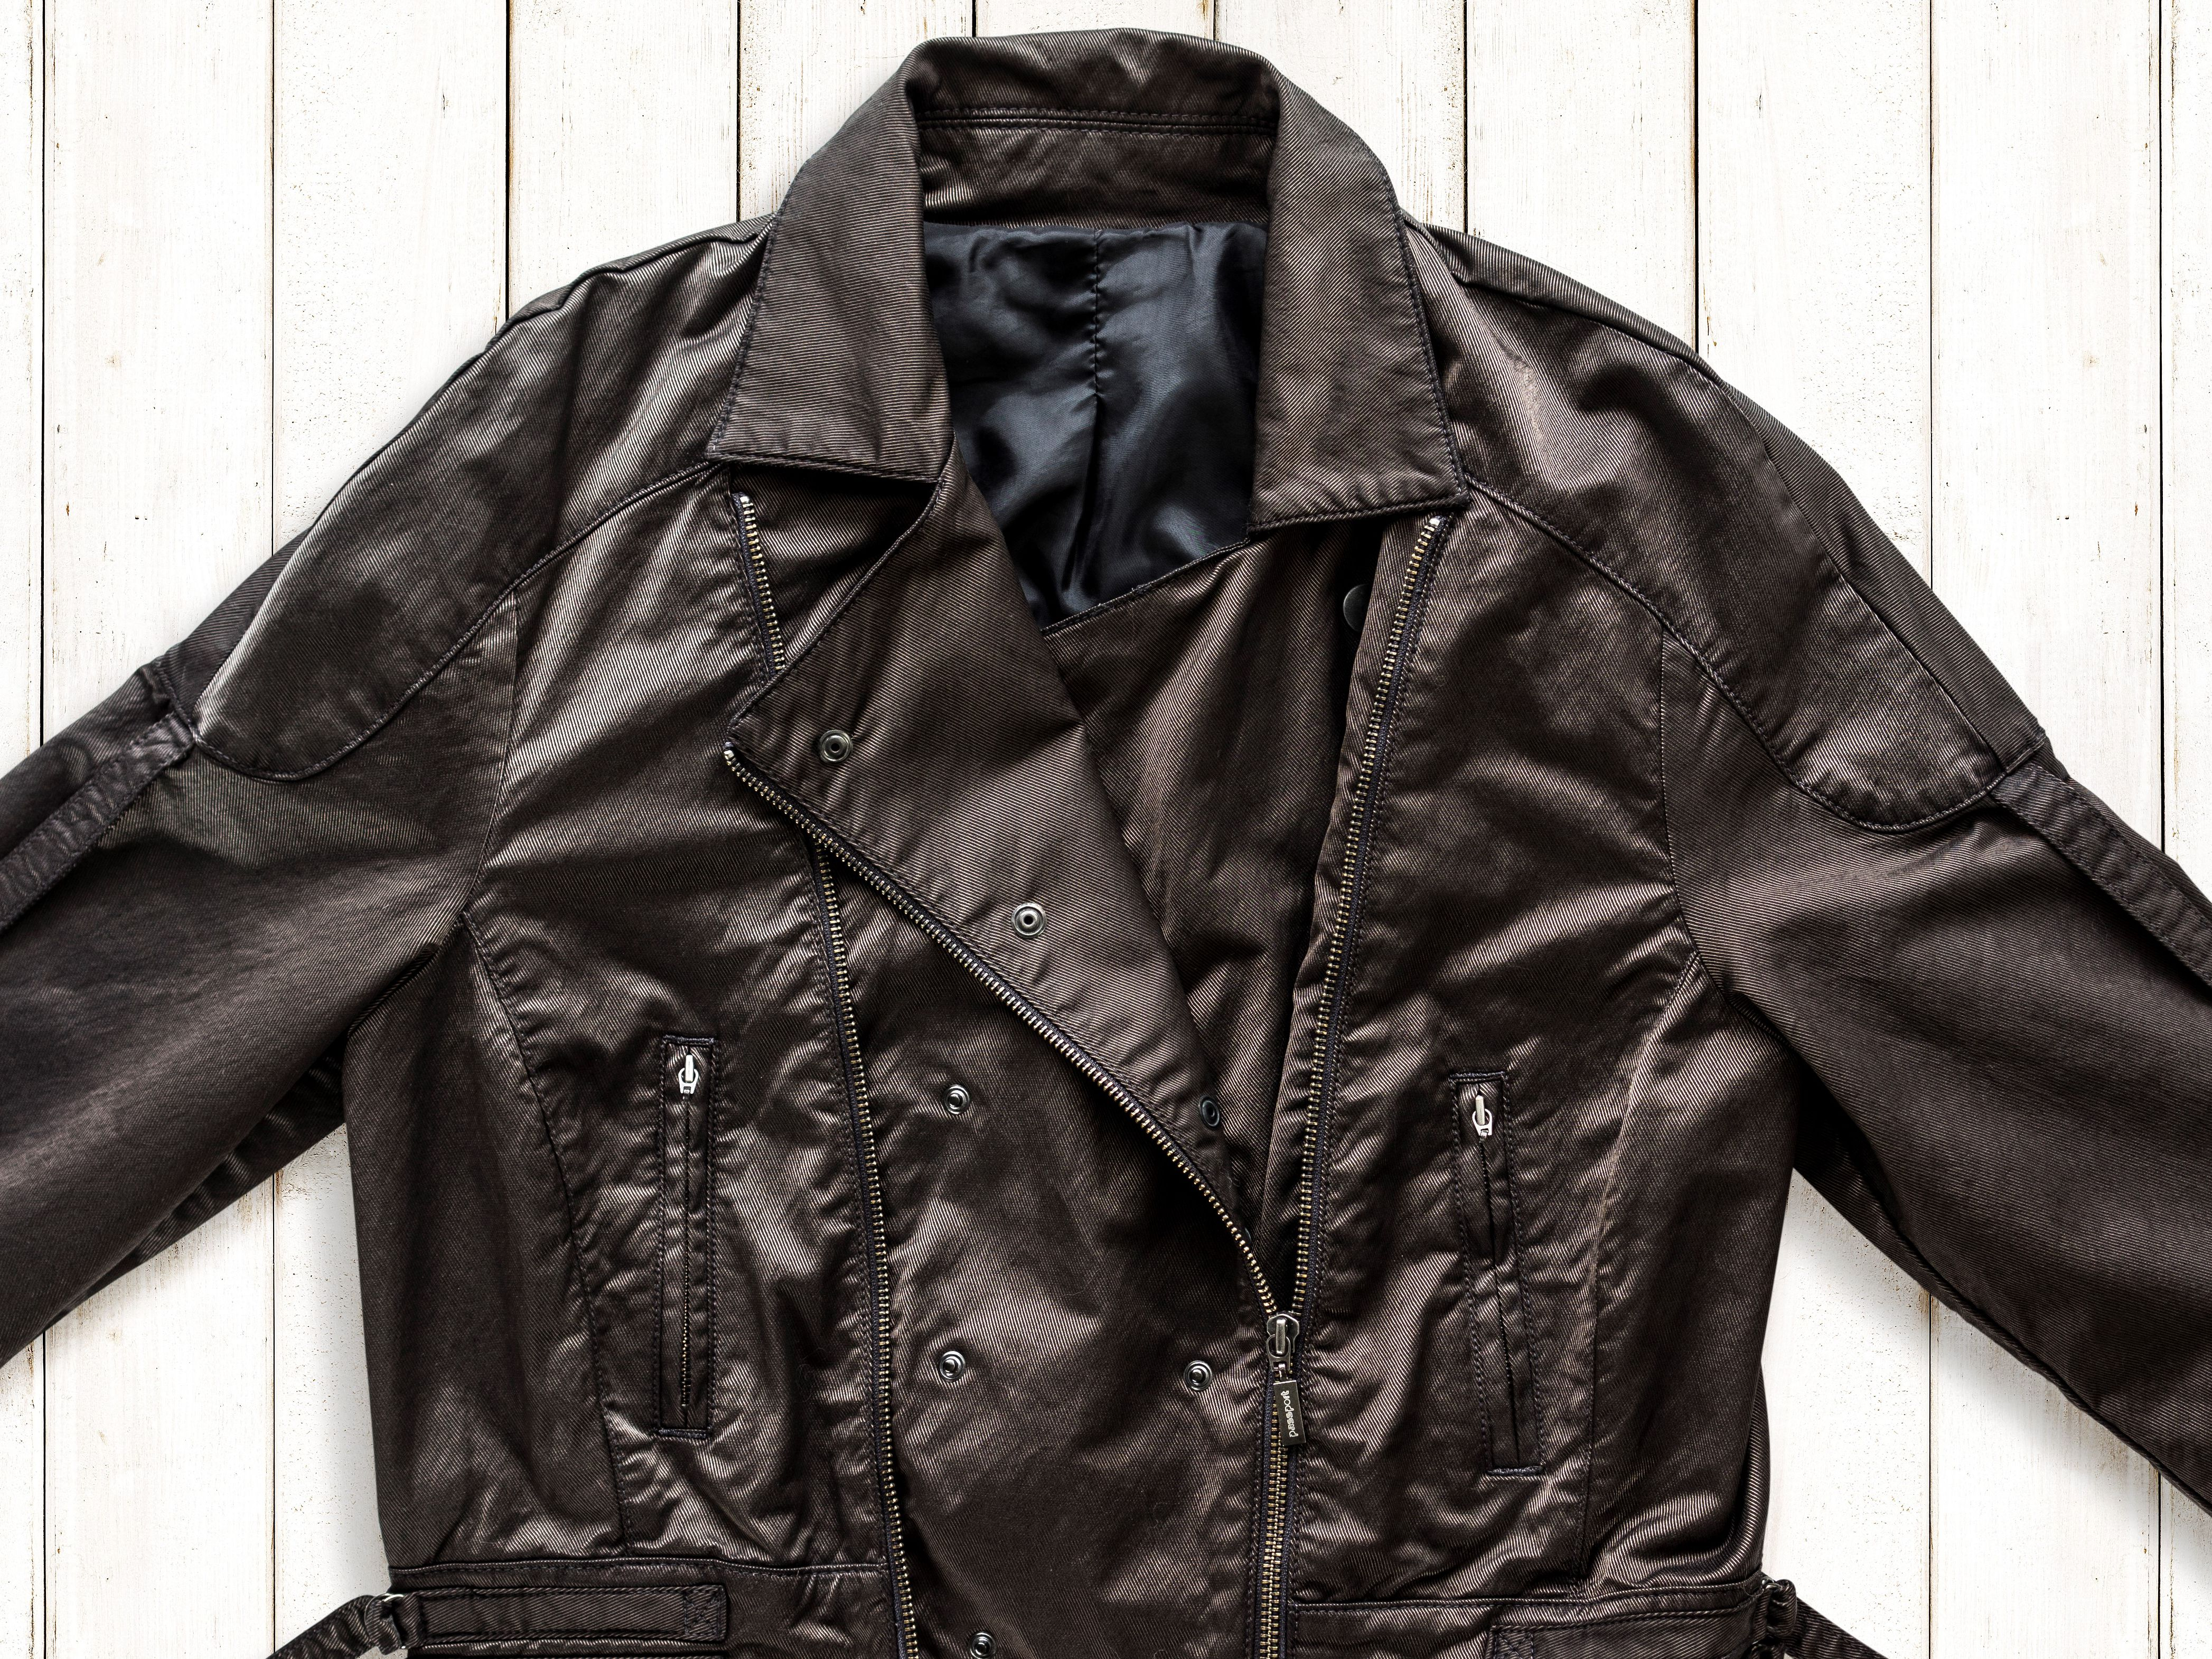 How To Wash Faux Leather Clothing